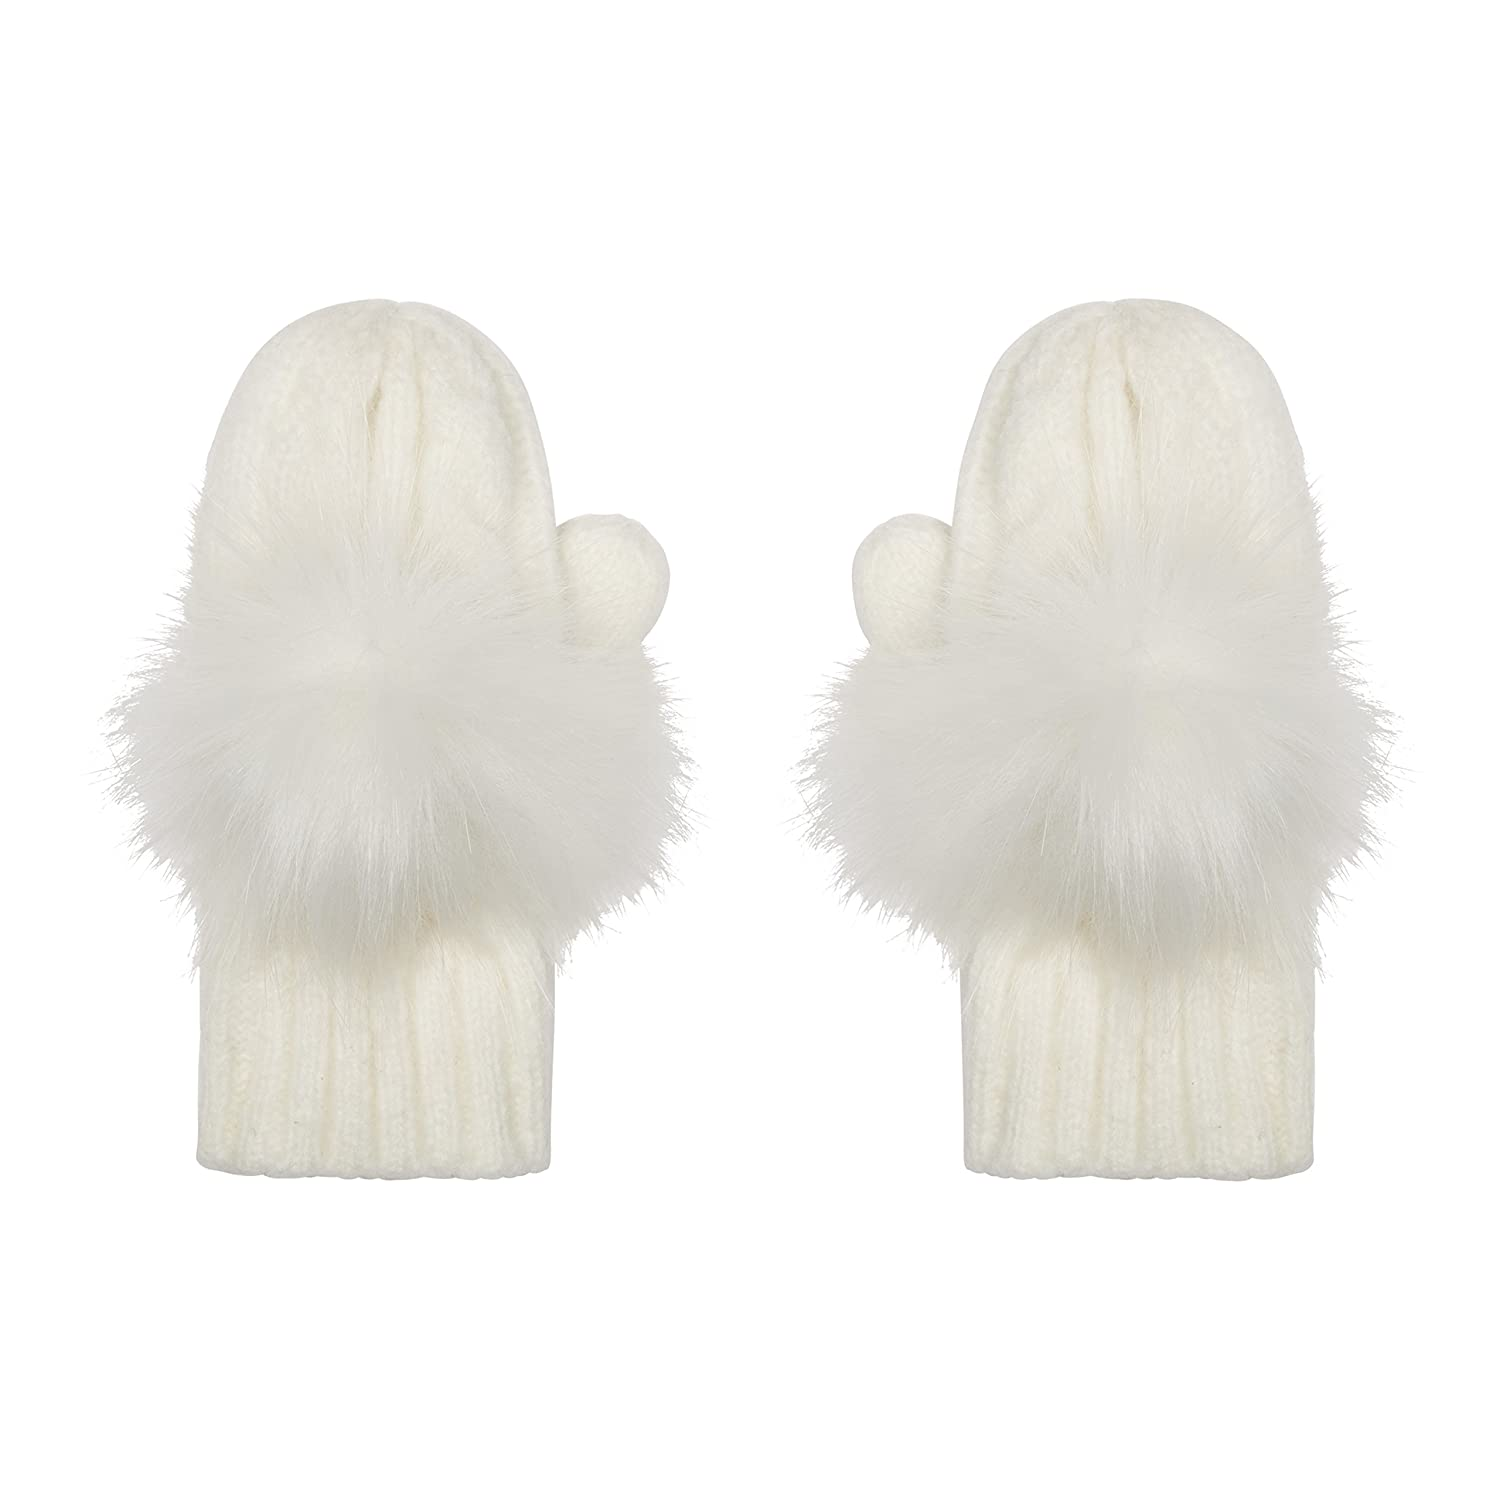 Aran Traditions Kids Cream White Cable Knit Faux Fur Pom Pom Gloves Mitts 3-6 Years